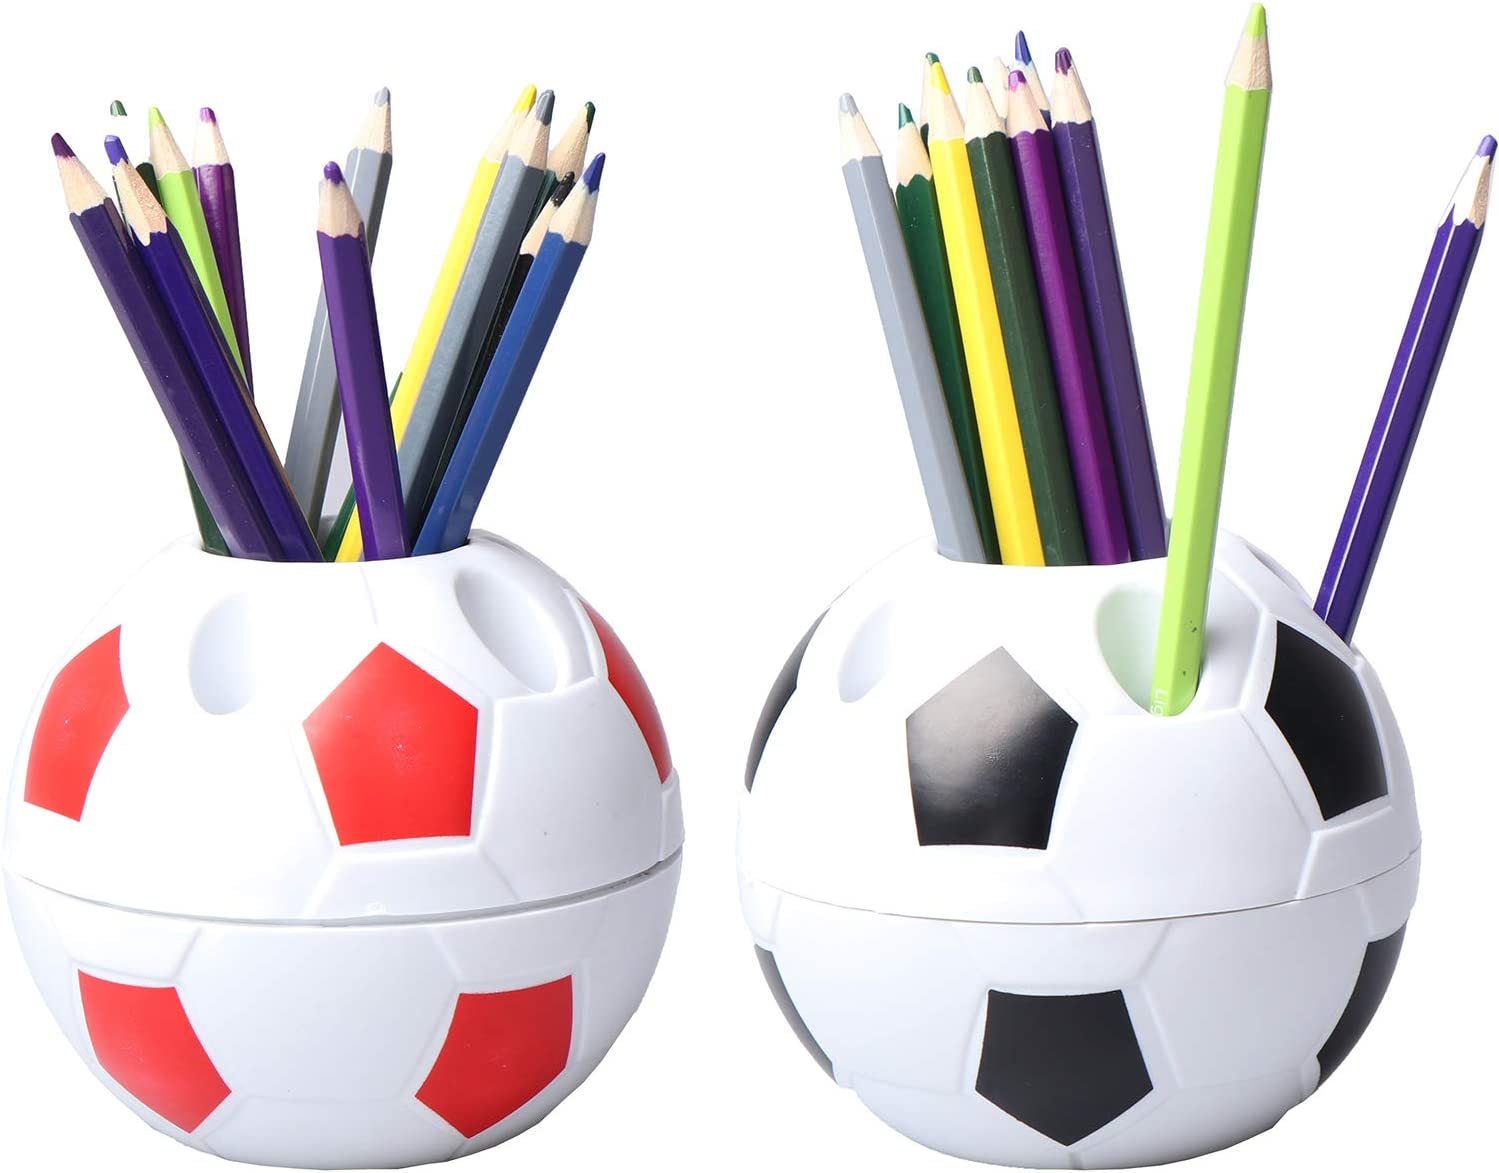 WONDS 2Pcs Pen Pencil Holder Plastic Desktop Organizer Container with Soccer Style for Children Students Soccer Shaped Holder Football Style Pen Holder Desktop Rack for Office Home Use